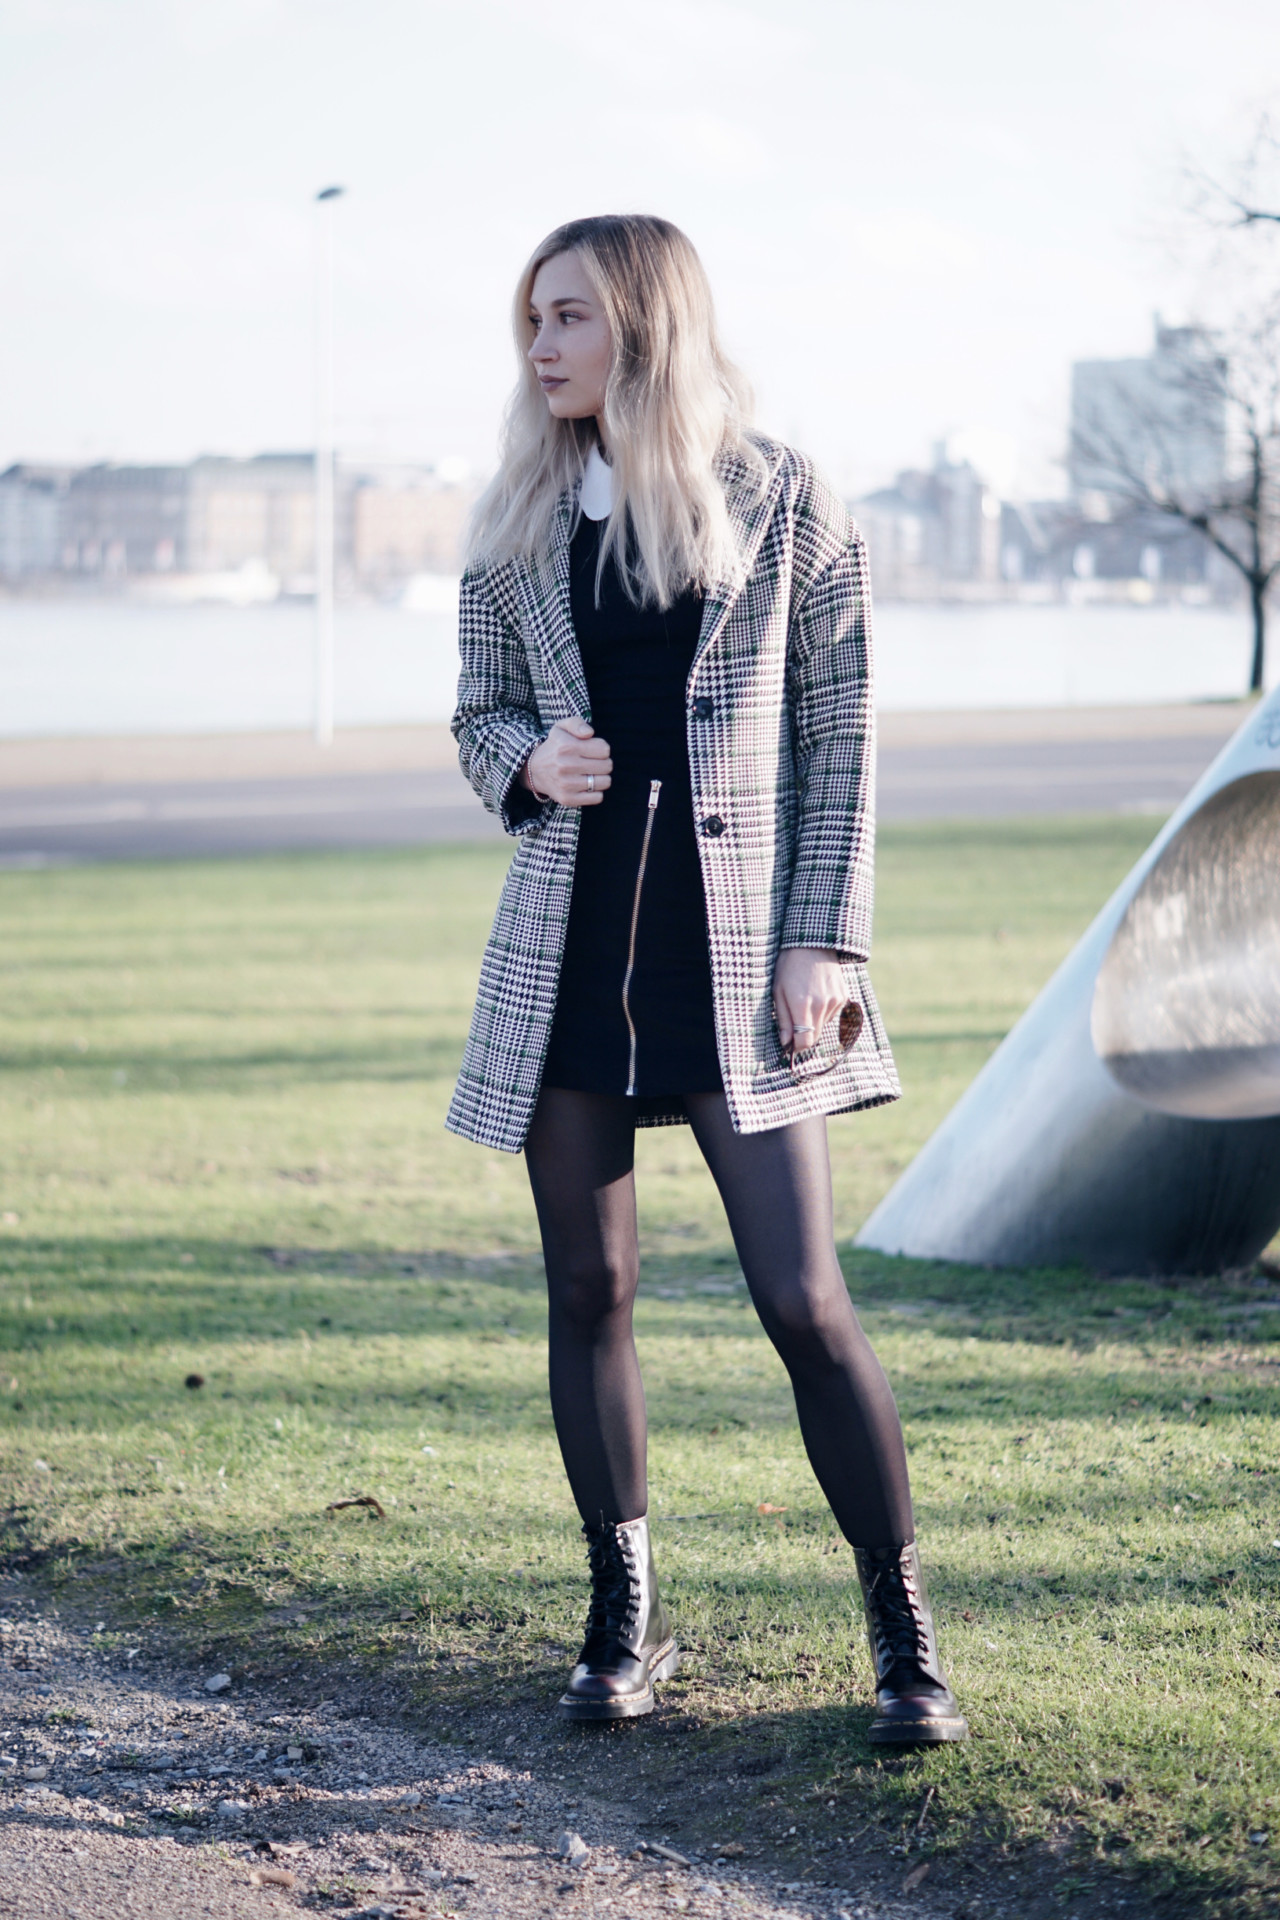 dbkstylez_dr.martens_stradivarius_fashion_springstrends